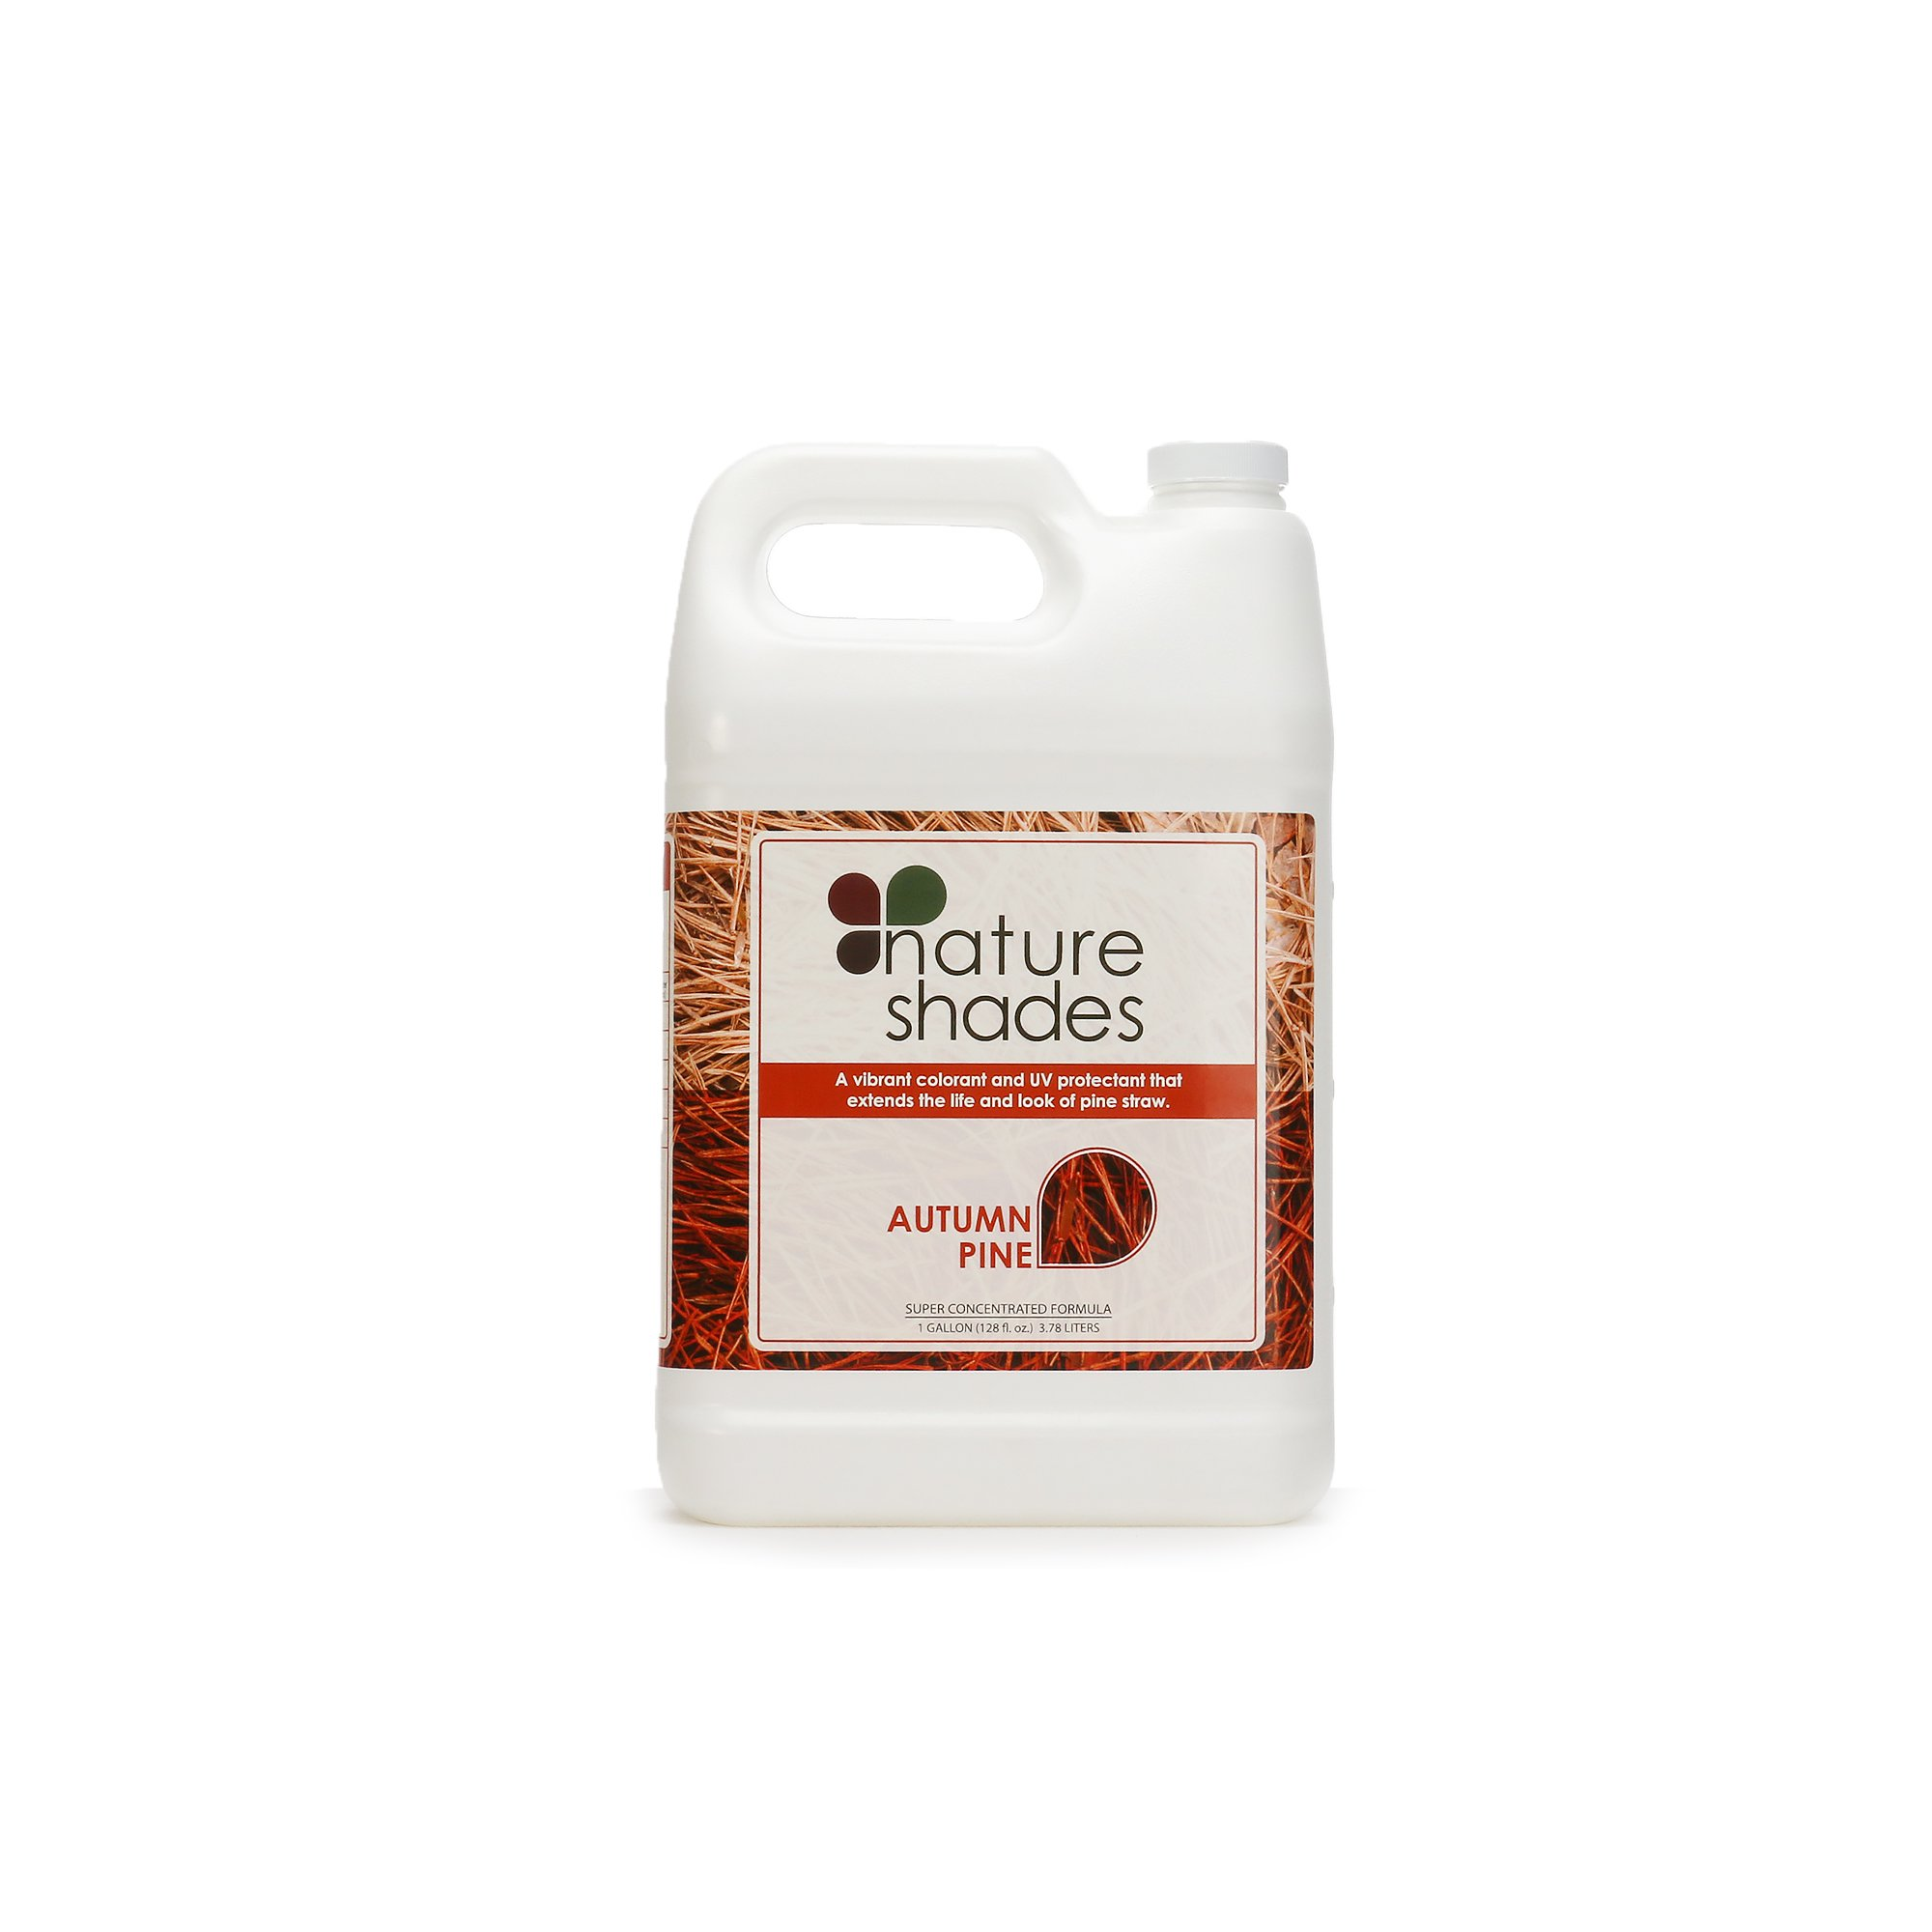 Nature Shades 1 Gallon Pine Straw Colorant Southern Pine Autumn Pine Pigment Dye (Autumn Pine) by Nature Shades